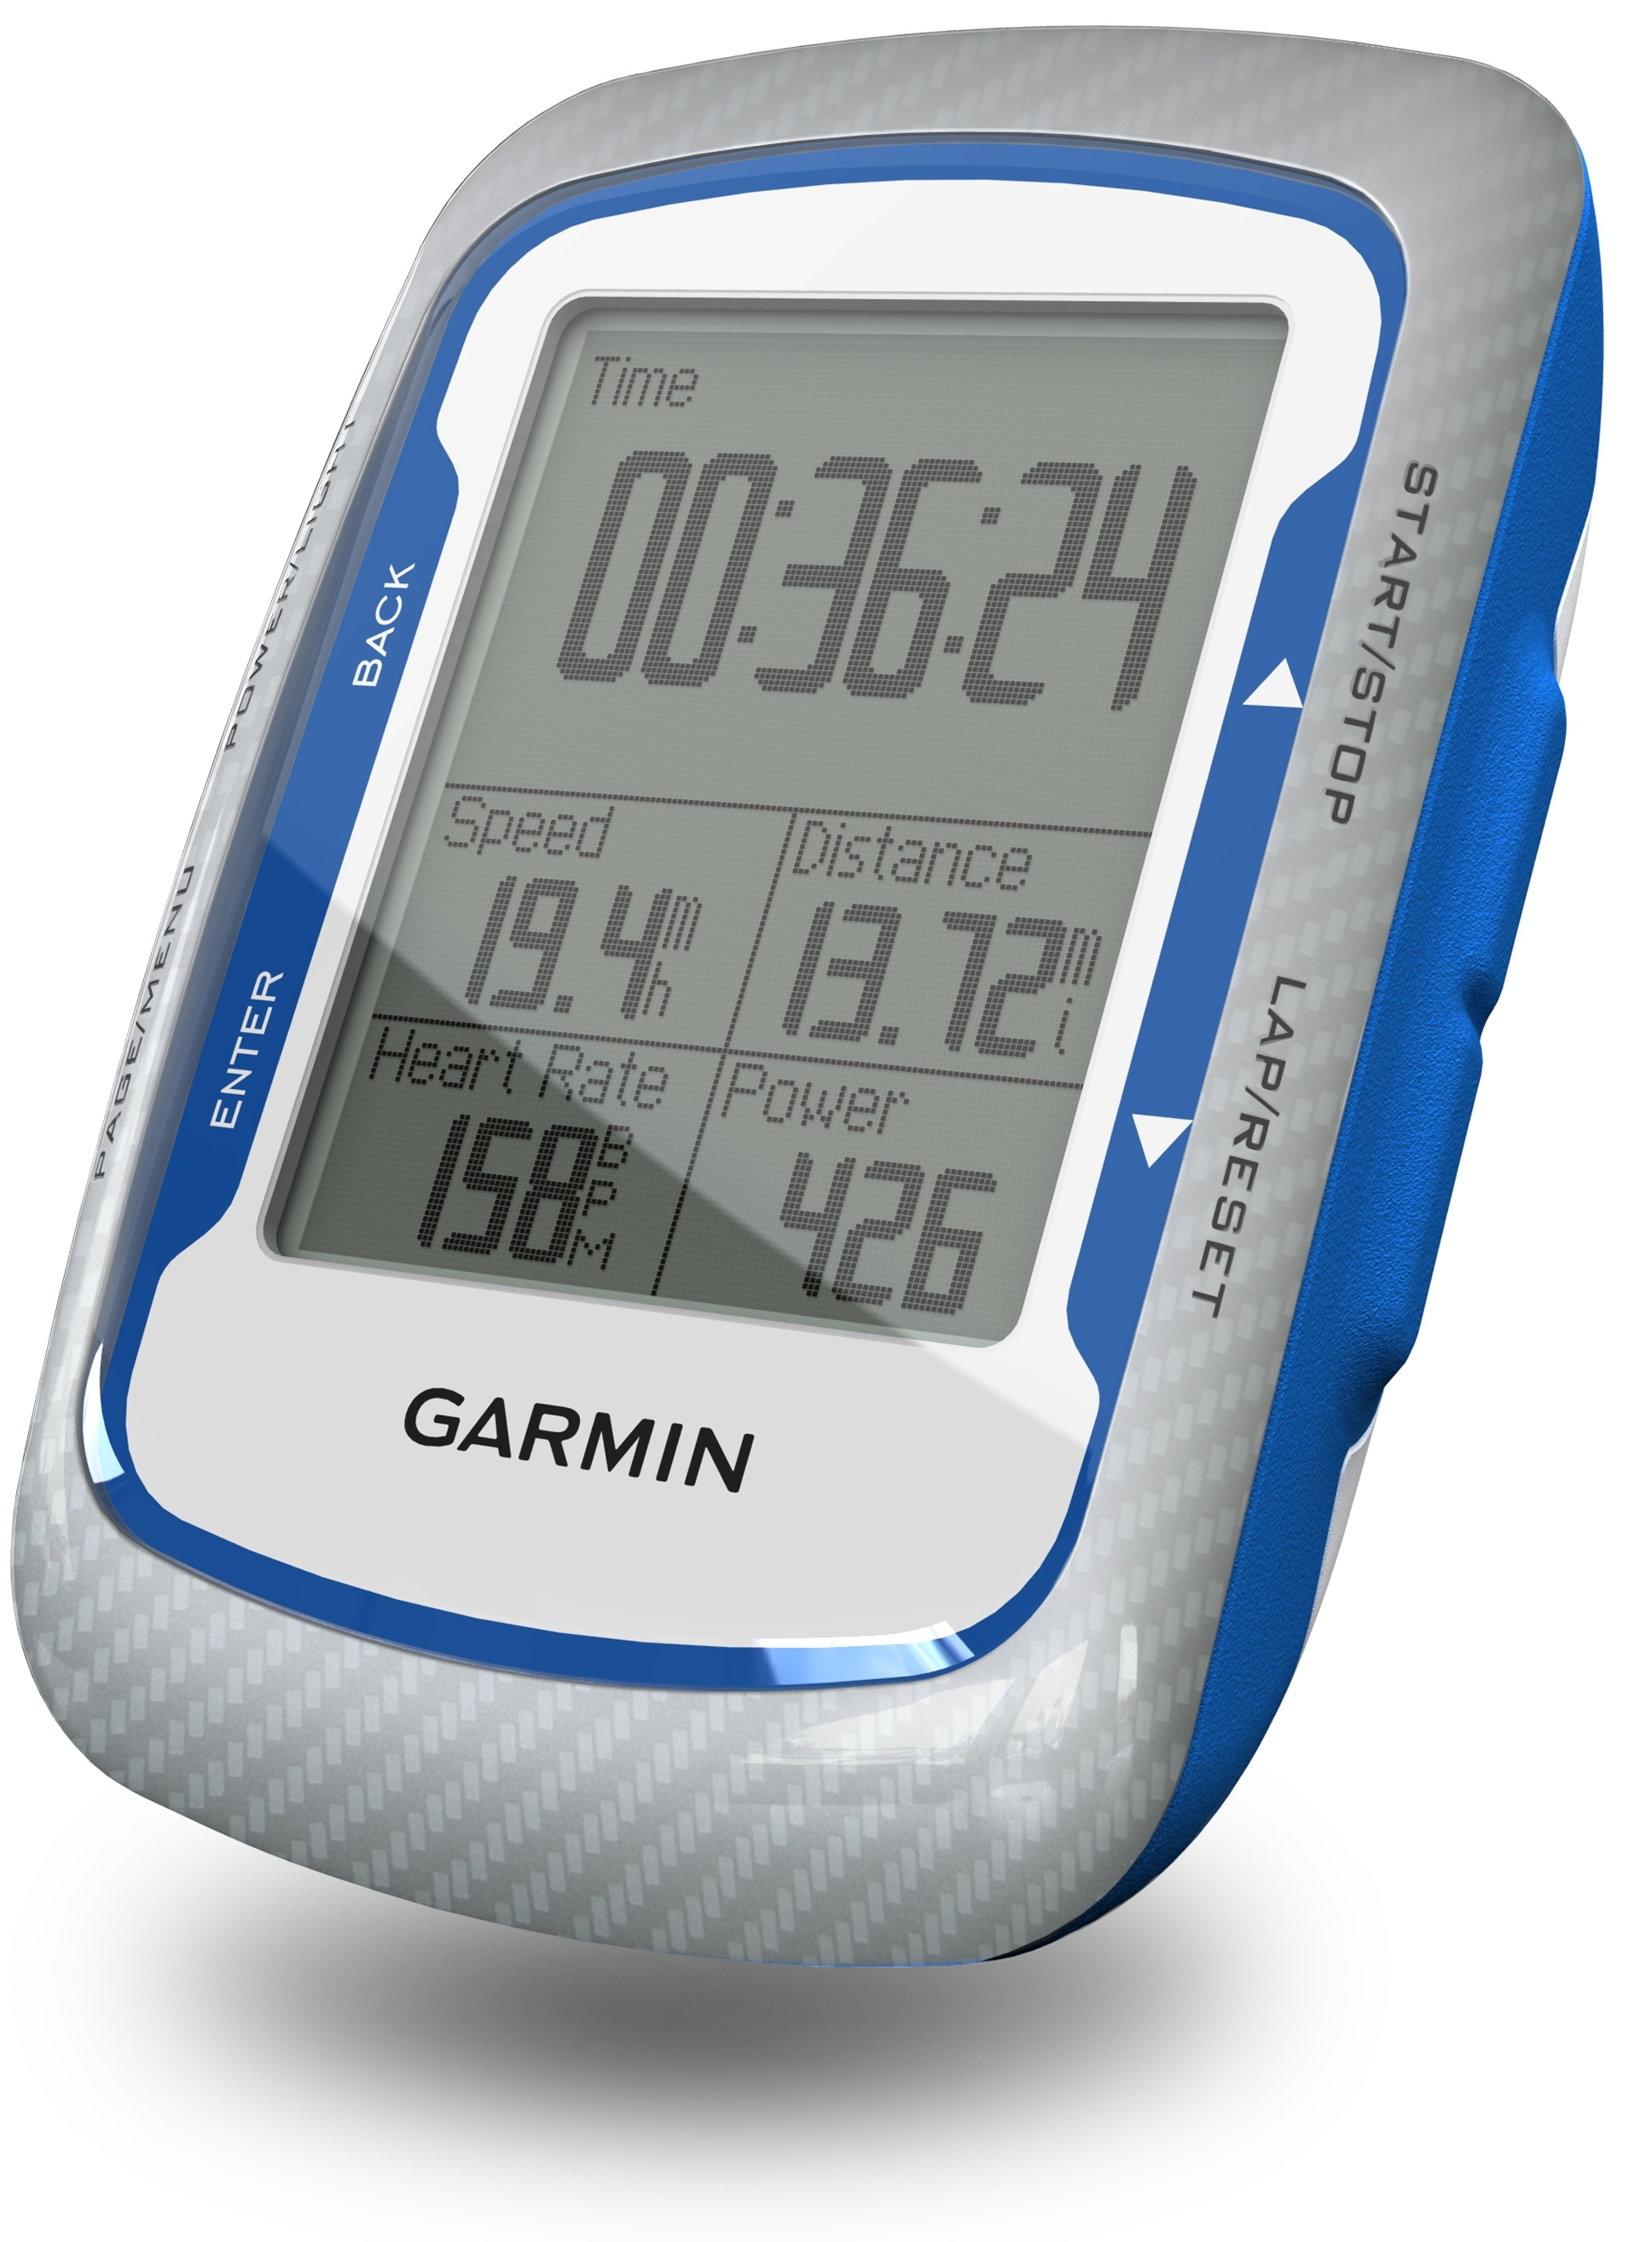 Garmin shows off Edge 500 GPS for cyclists